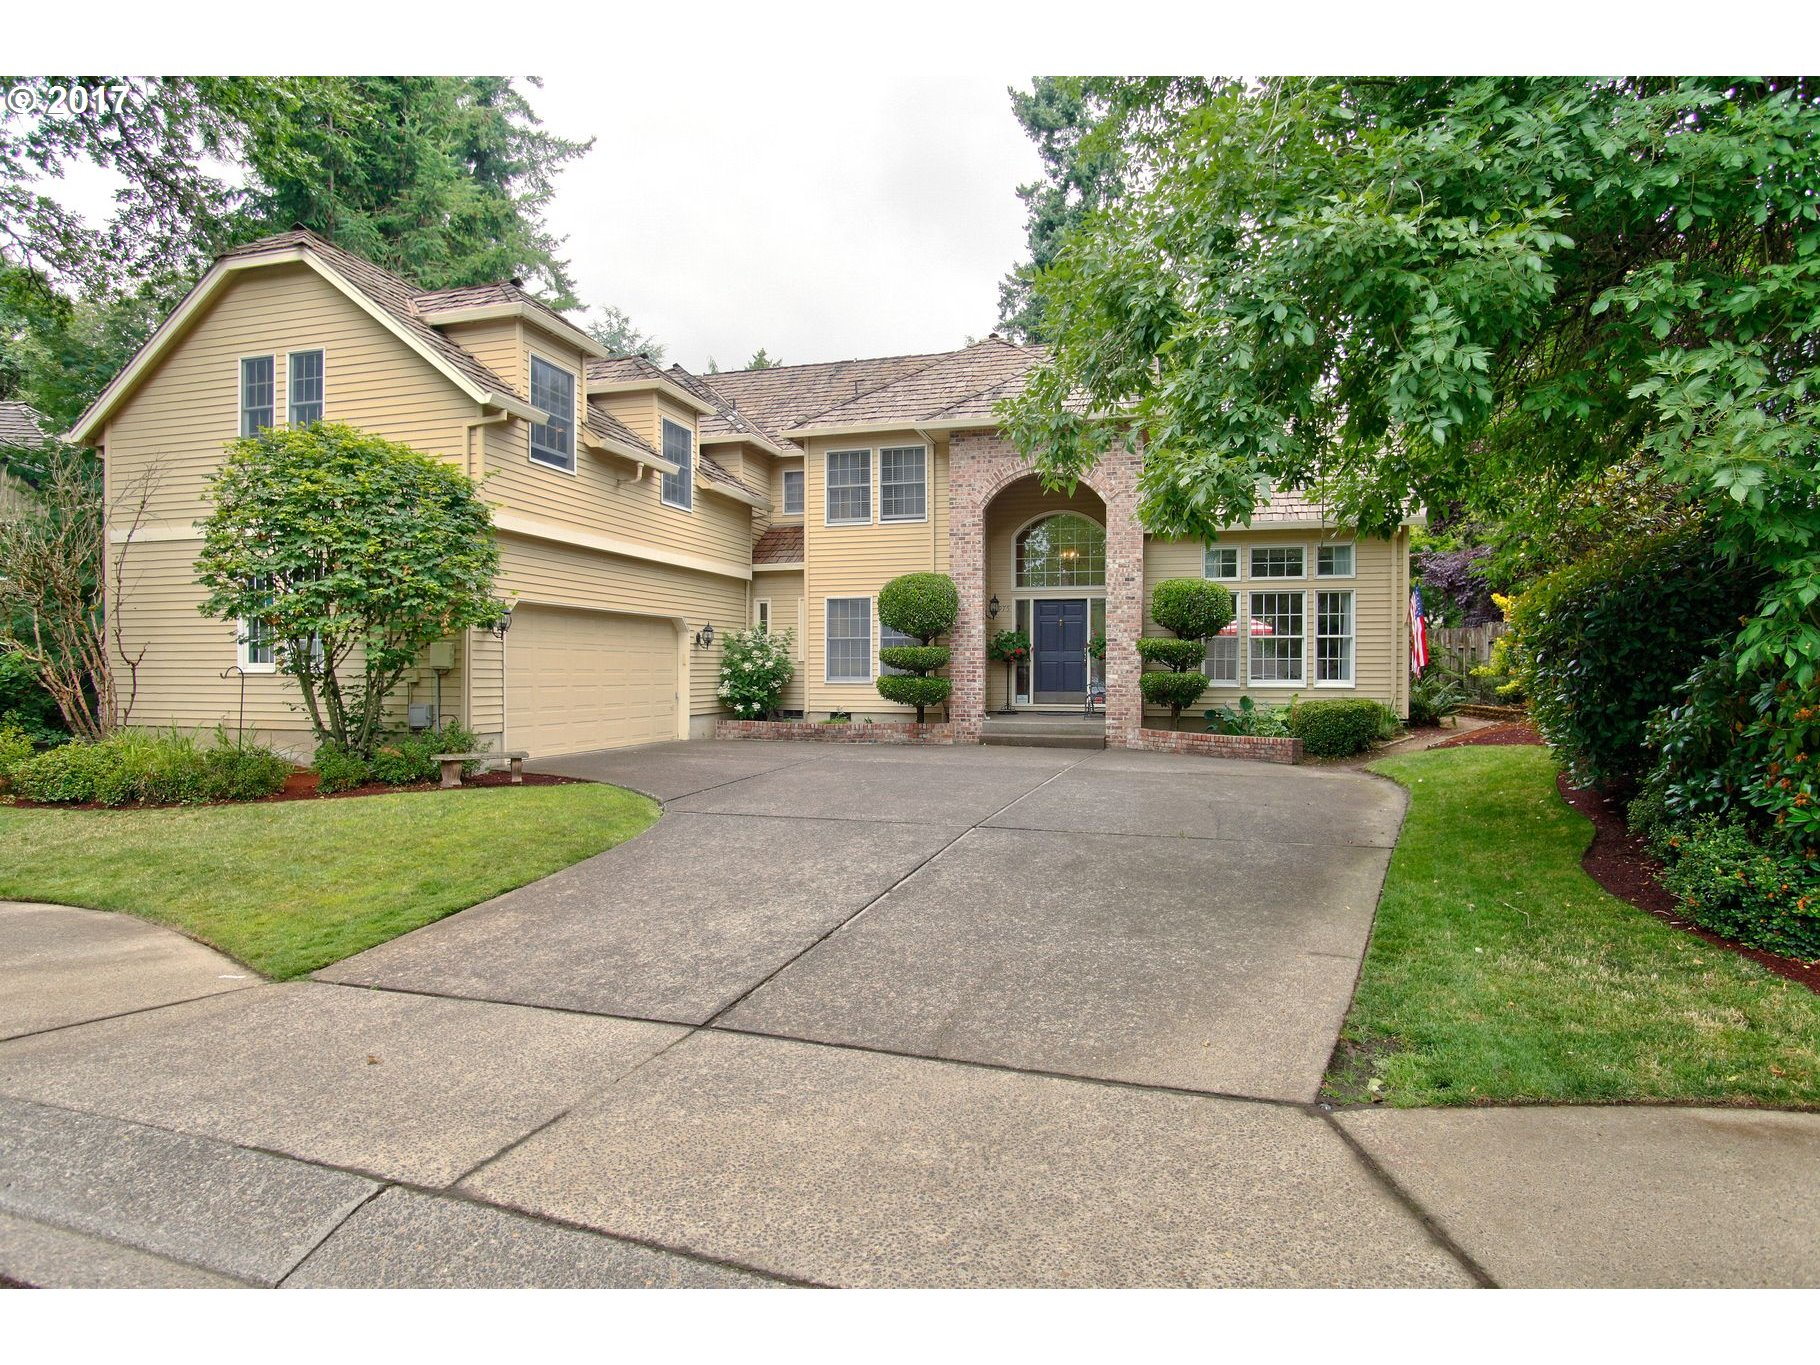 5975 NEWCASTLE DR, Lake Oswego, OR 97035